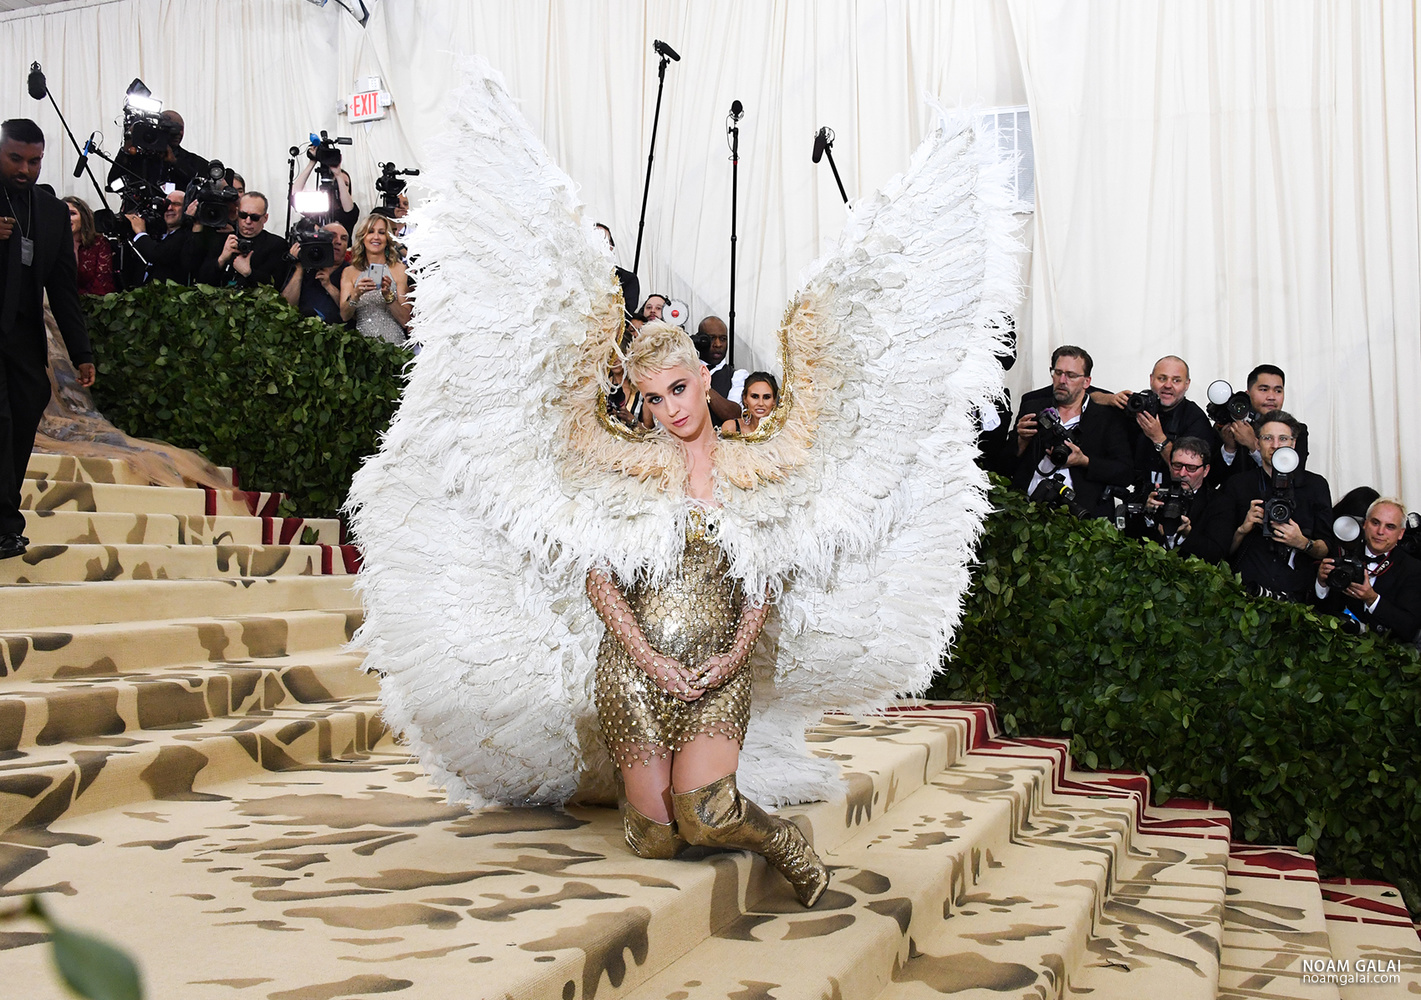 Katy Perry at the Met Gala by Noam Galai